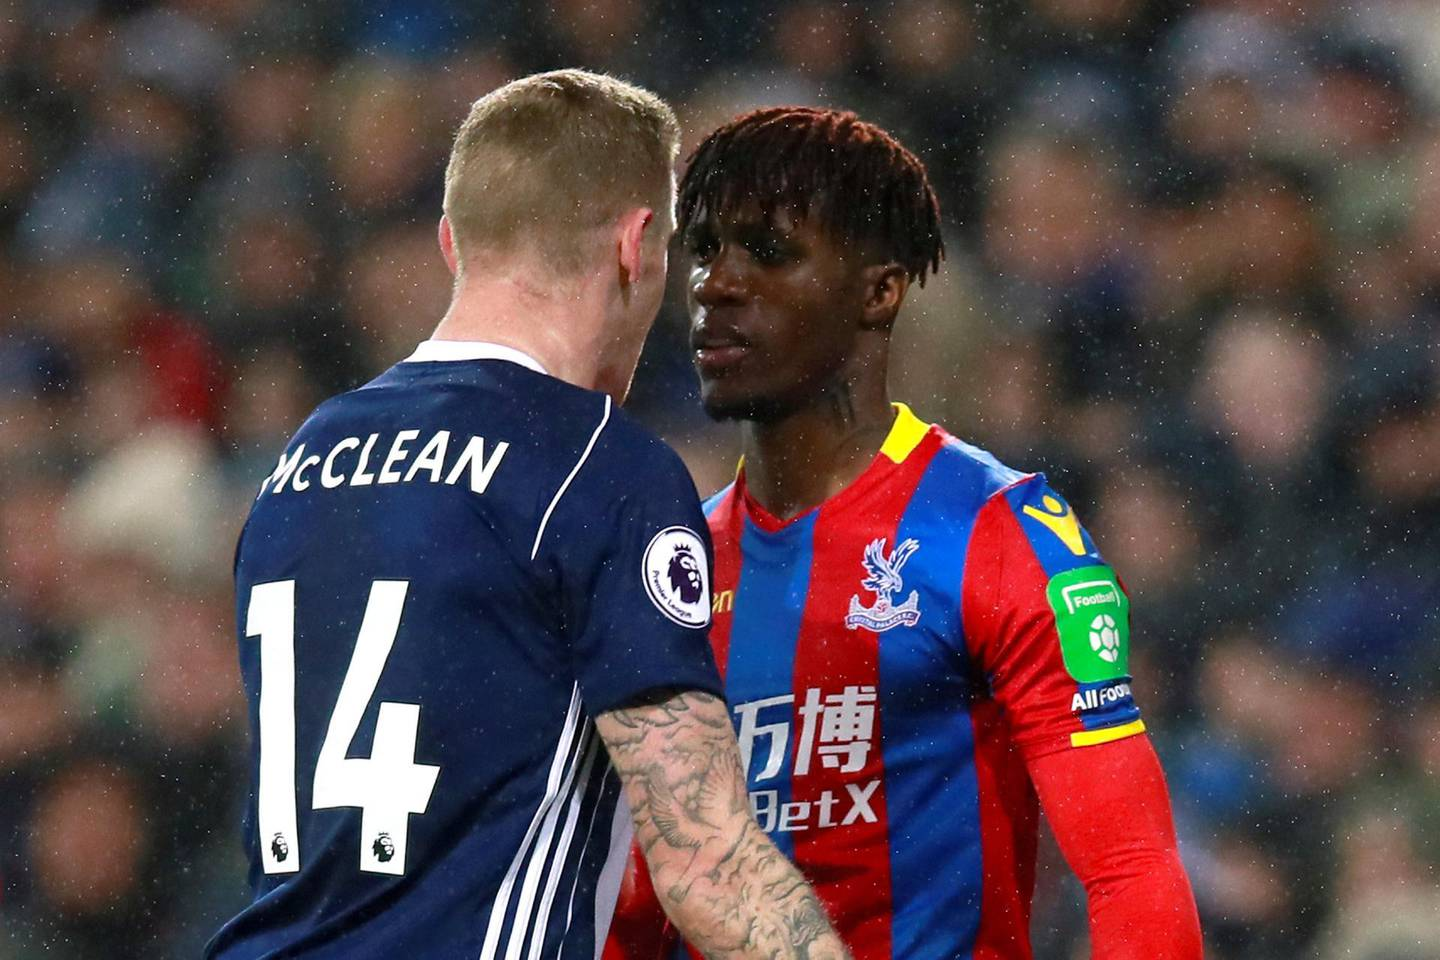 """Soccer Football - Premier League - West Bromwich Albion vs Crystal Palace - The Hawthorns, West Bromwich, Britain - December 2, 2017   Crystal Palace's Wilfried Zaha clashes with West Bromwich Albion's James McClean    Action Images via Reuters/Jason Cairnduff    EDITORIAL USE ONLY. No use with unauthorized audio, video, data, fixture lists, club/league logos or """"live"""" services. Online in-match use limited to 75 images, no video emulation. No use in betting, games or single club/league/player publications. Please contact your account representative for further details."""